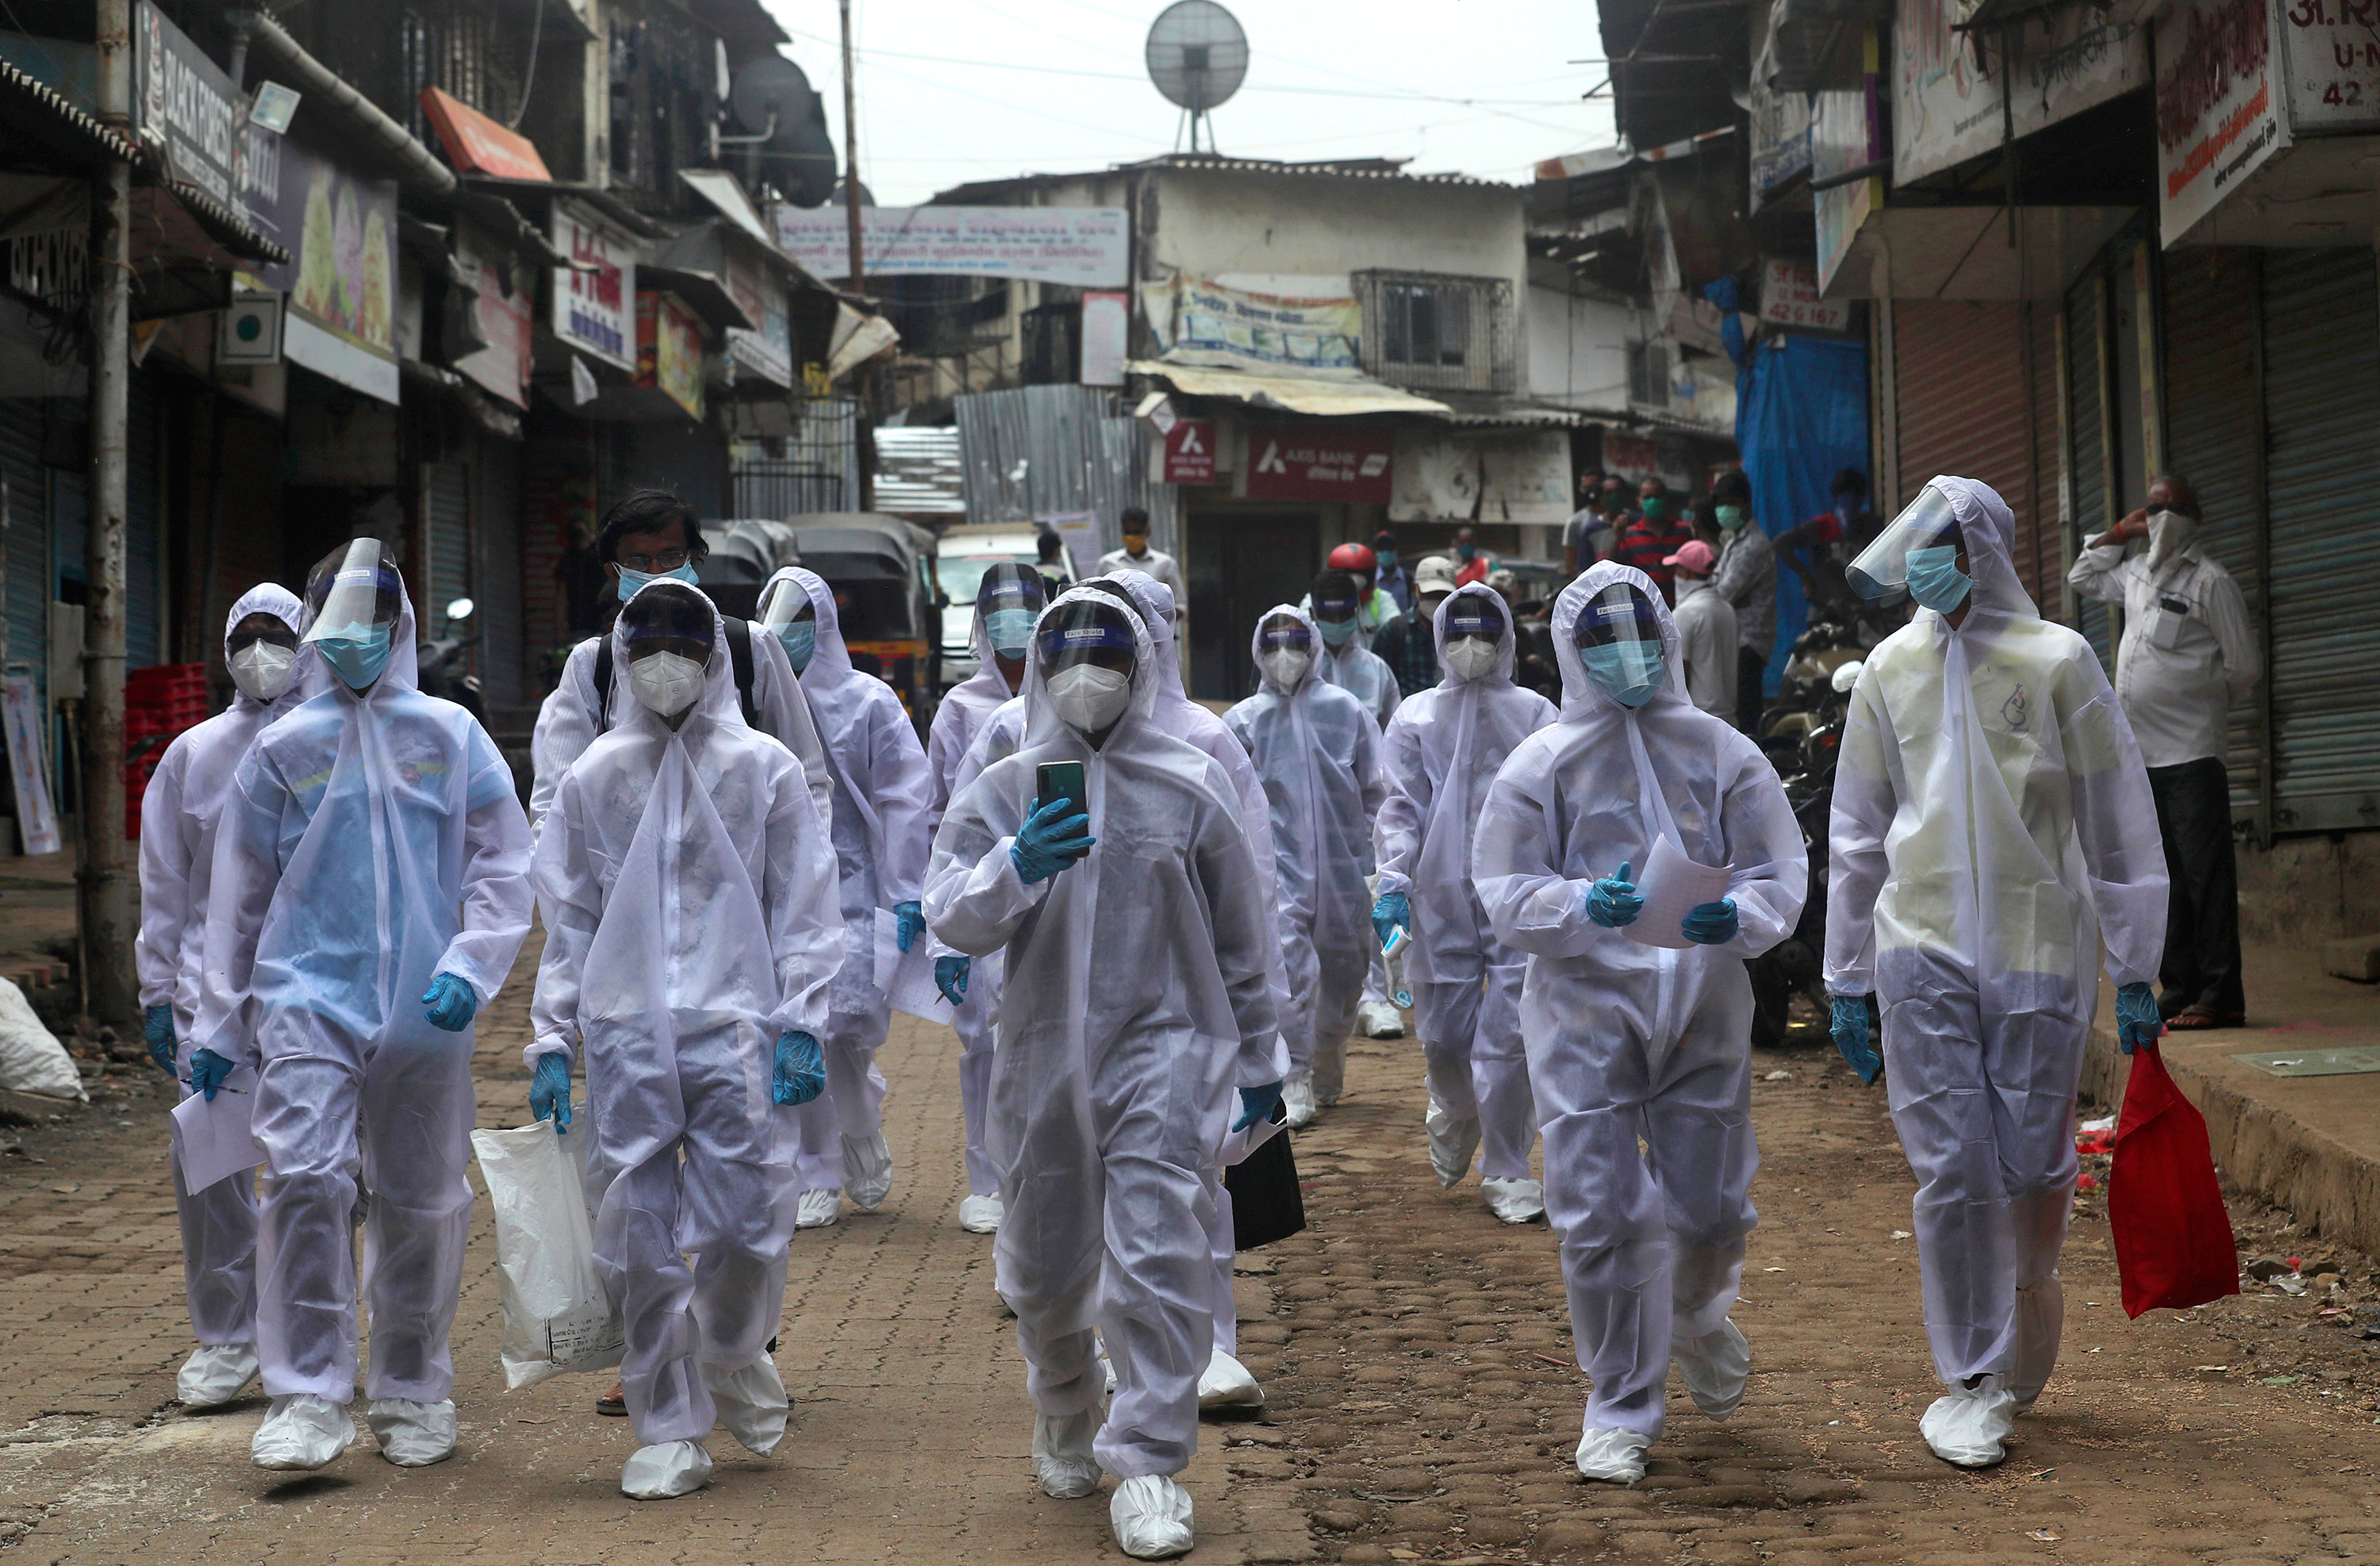 Health workers arrive to administer free medical checkups on June 28 in Mumbai, India.